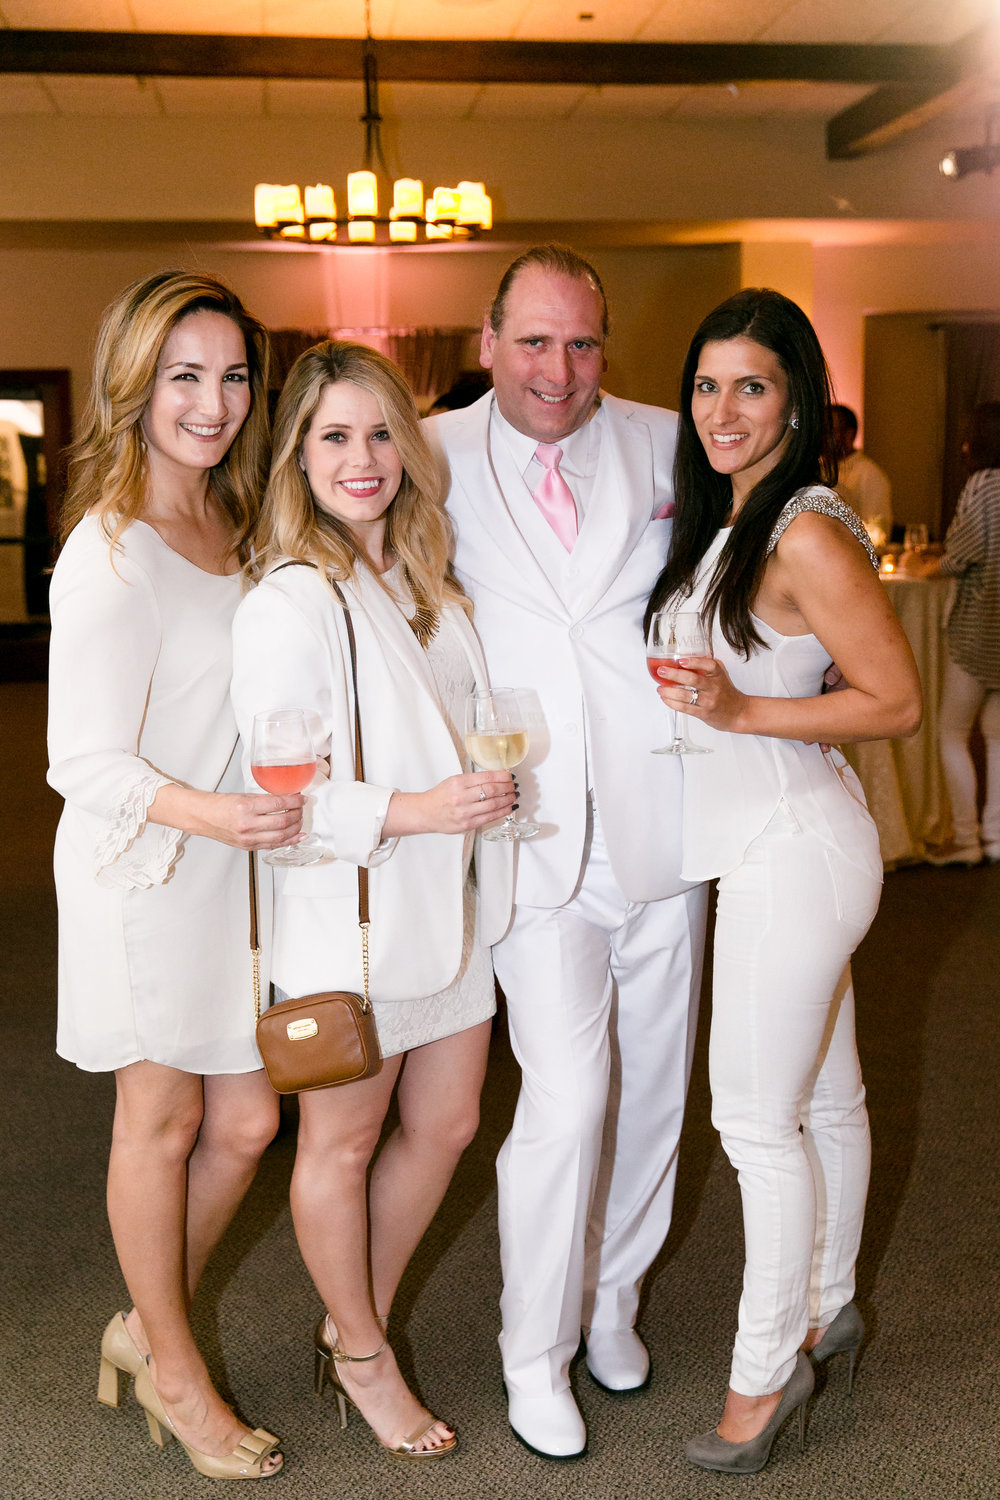 Michelle Garibay Events 10th Anniversary | Leah Marie Photography